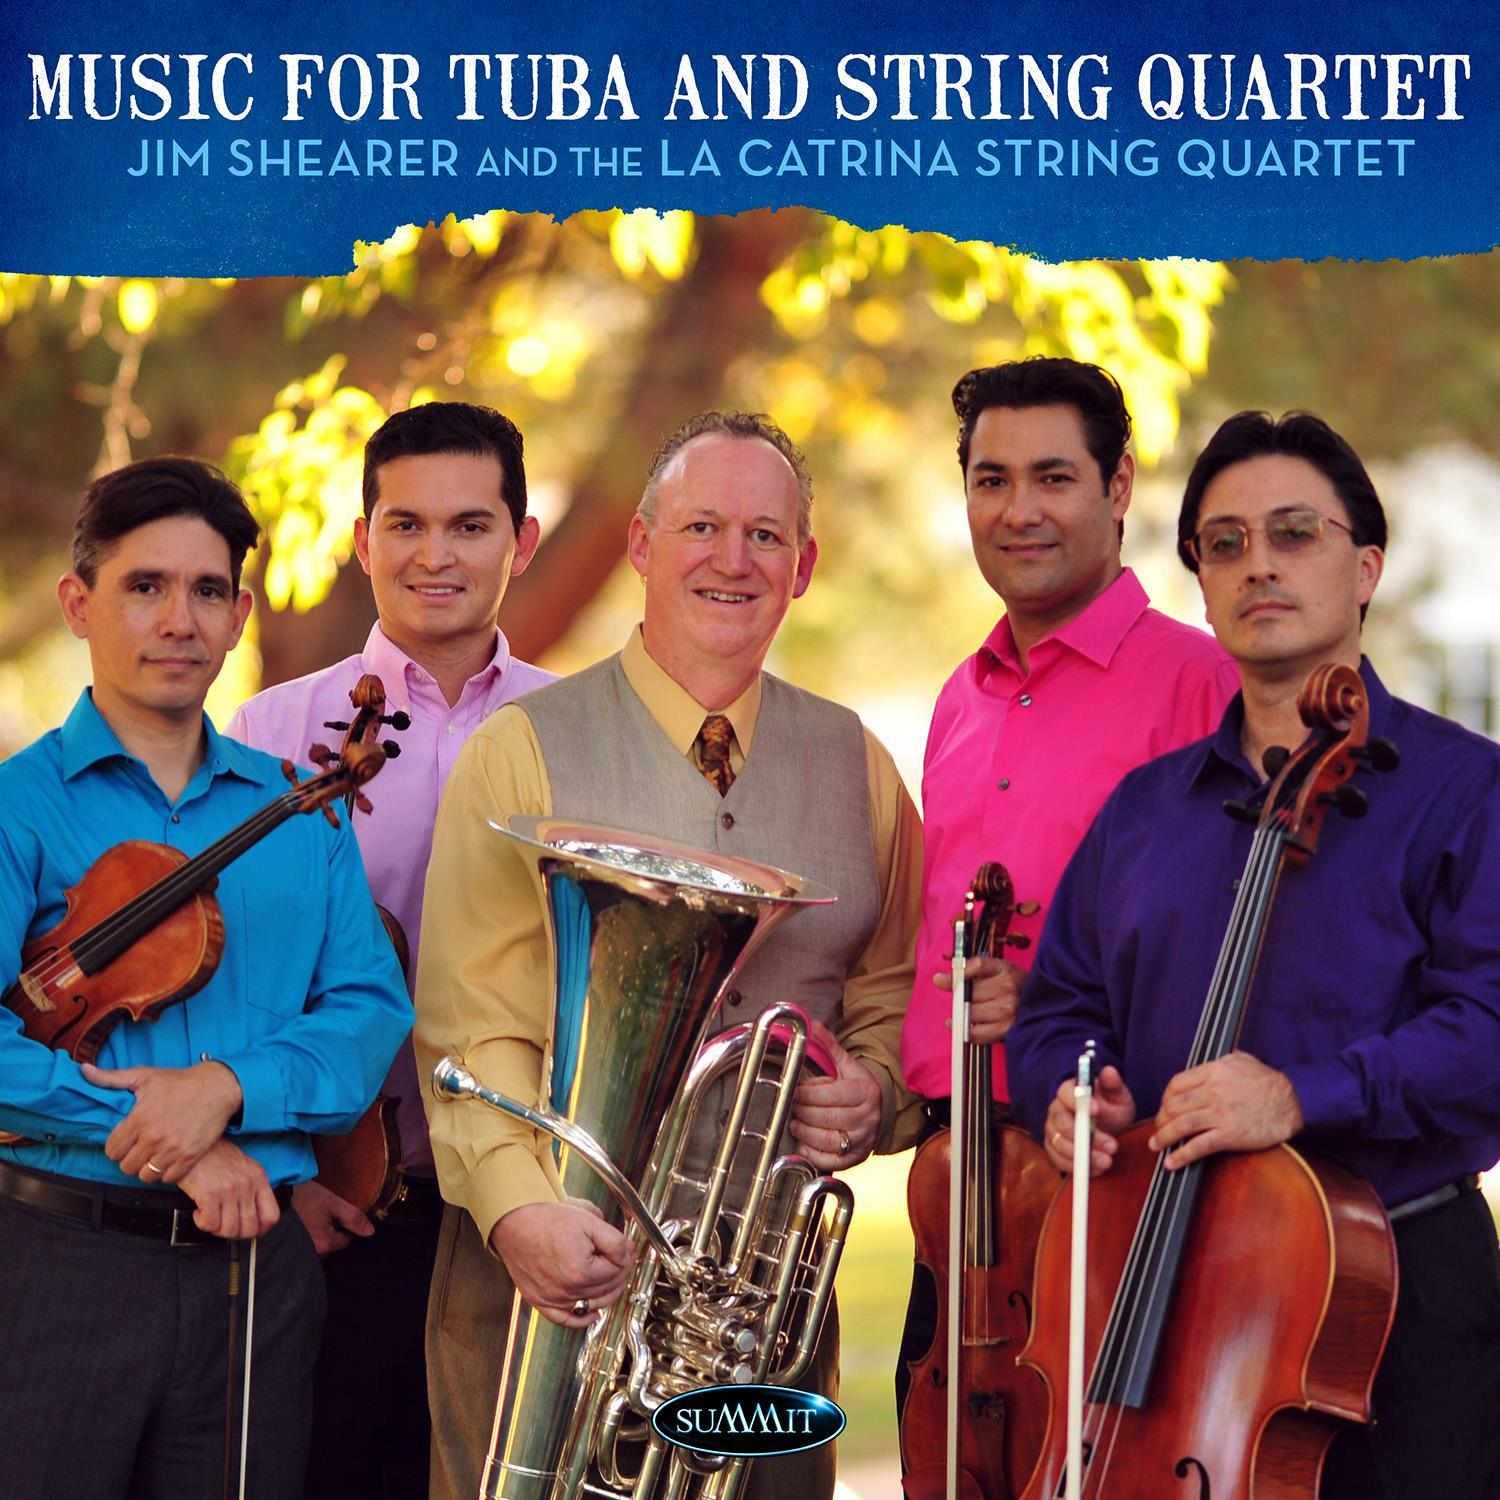 Music for Tuba and String Quartet – Jim Shearer and the La